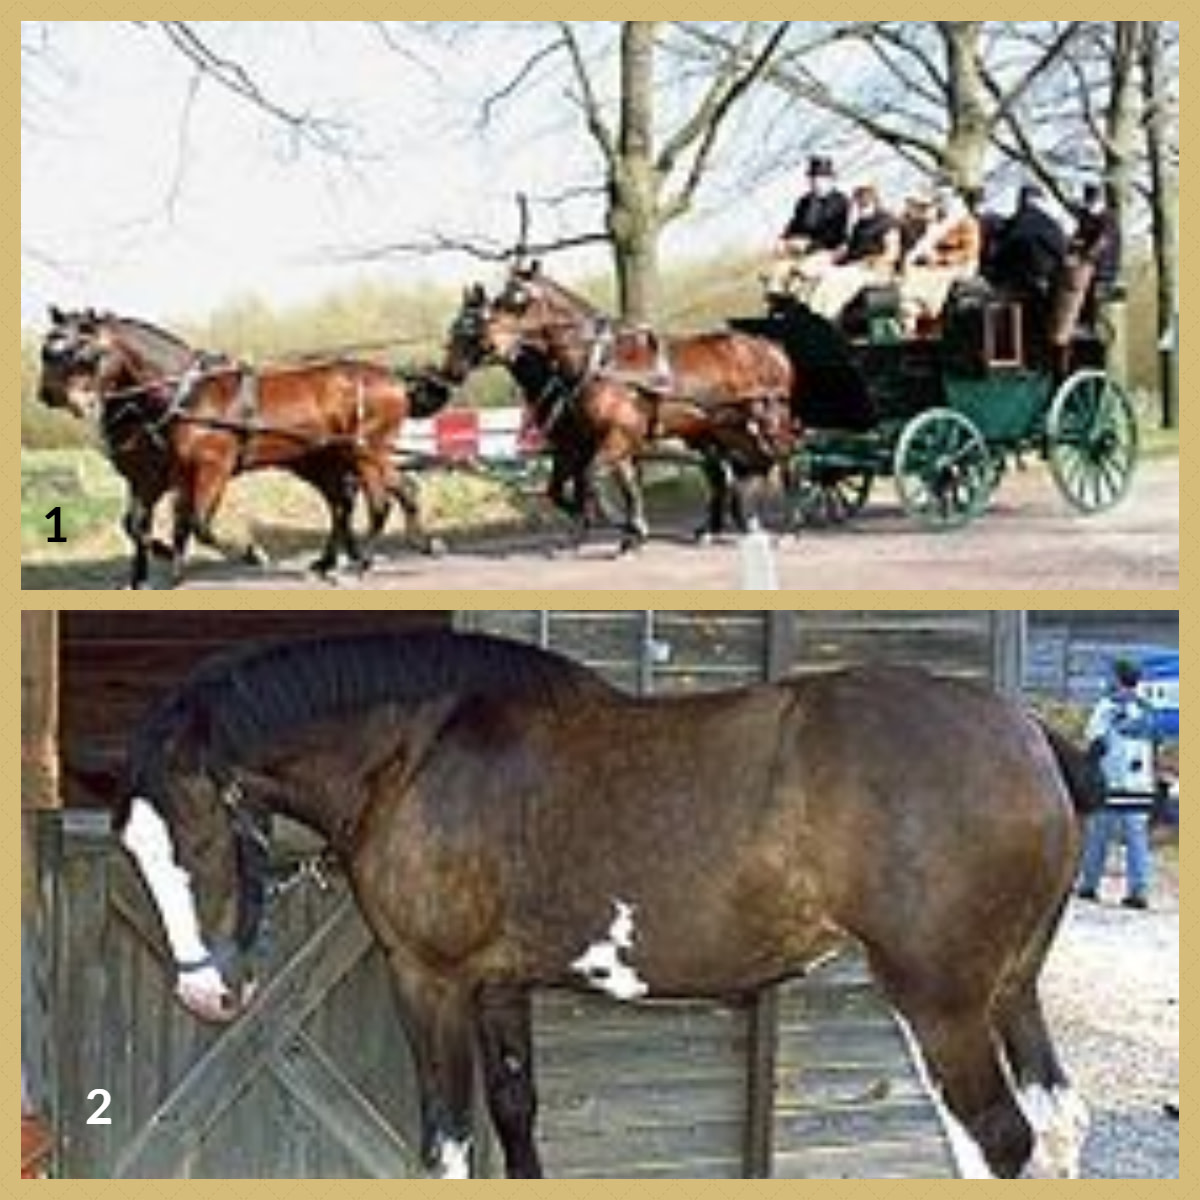 1. Cleveland Bay Horse 2. Clydesdale Horse